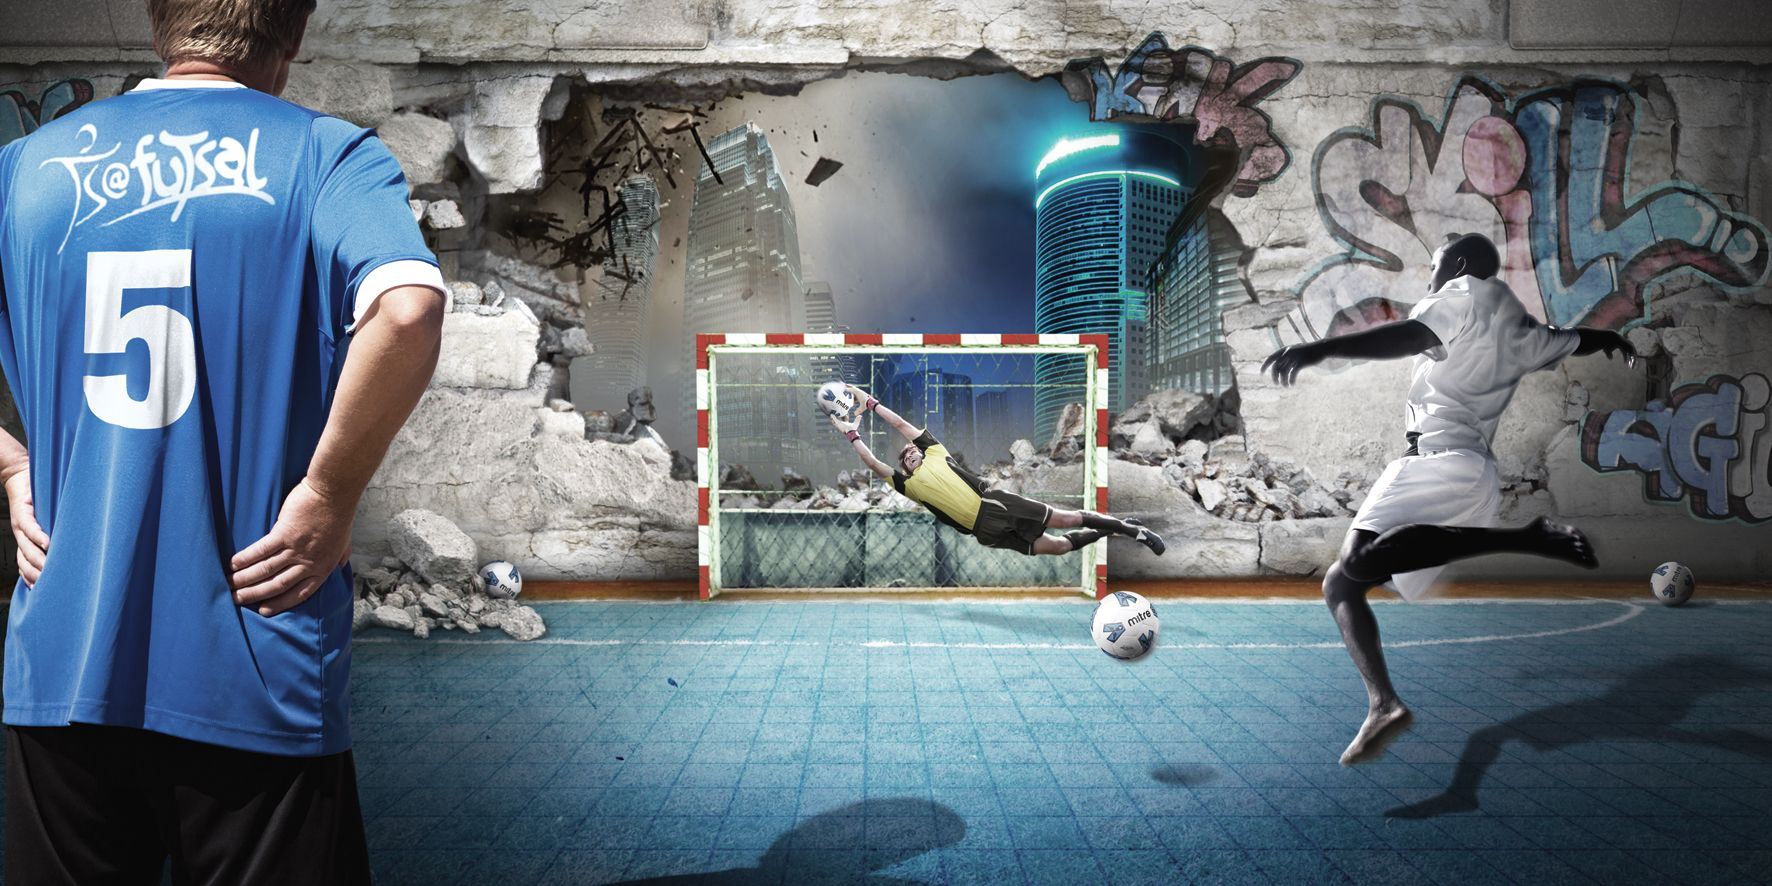 Street soccer wallpaper